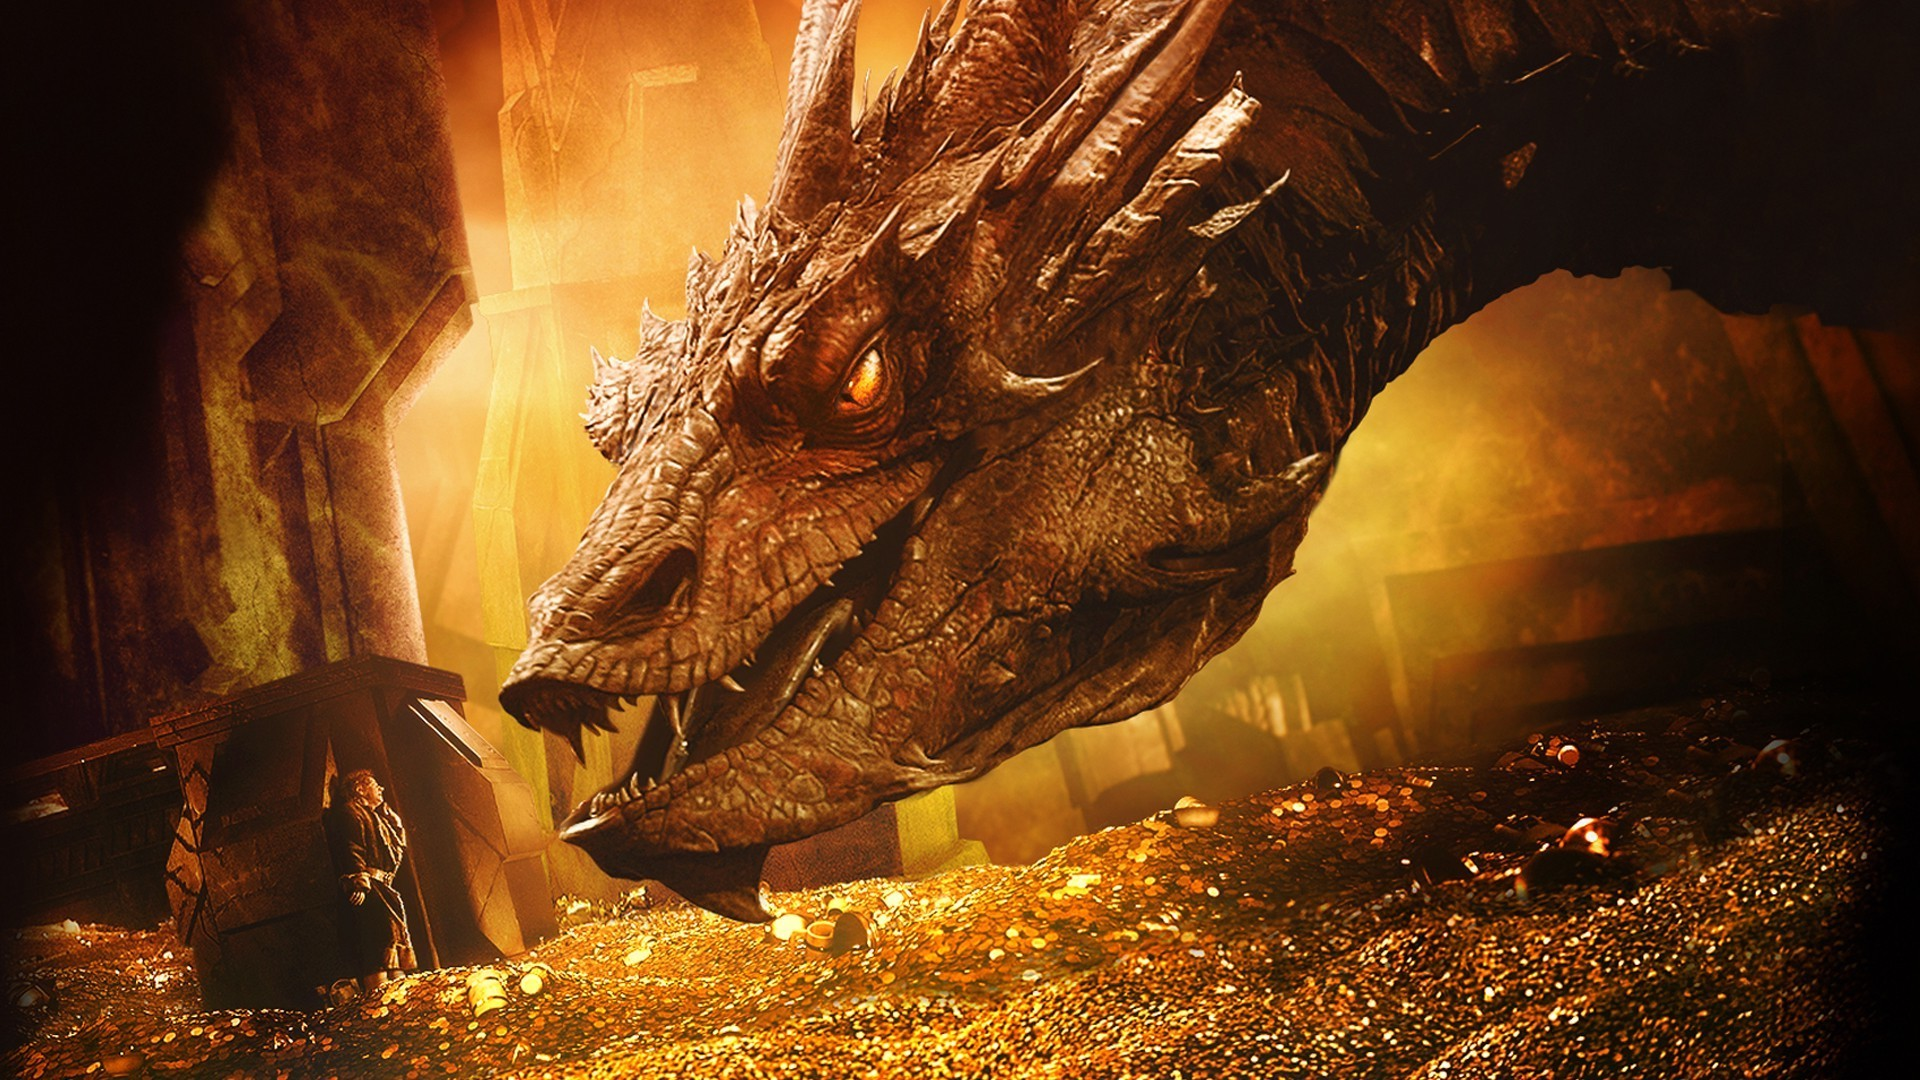 Gold Dragon In Lord Of The Rings